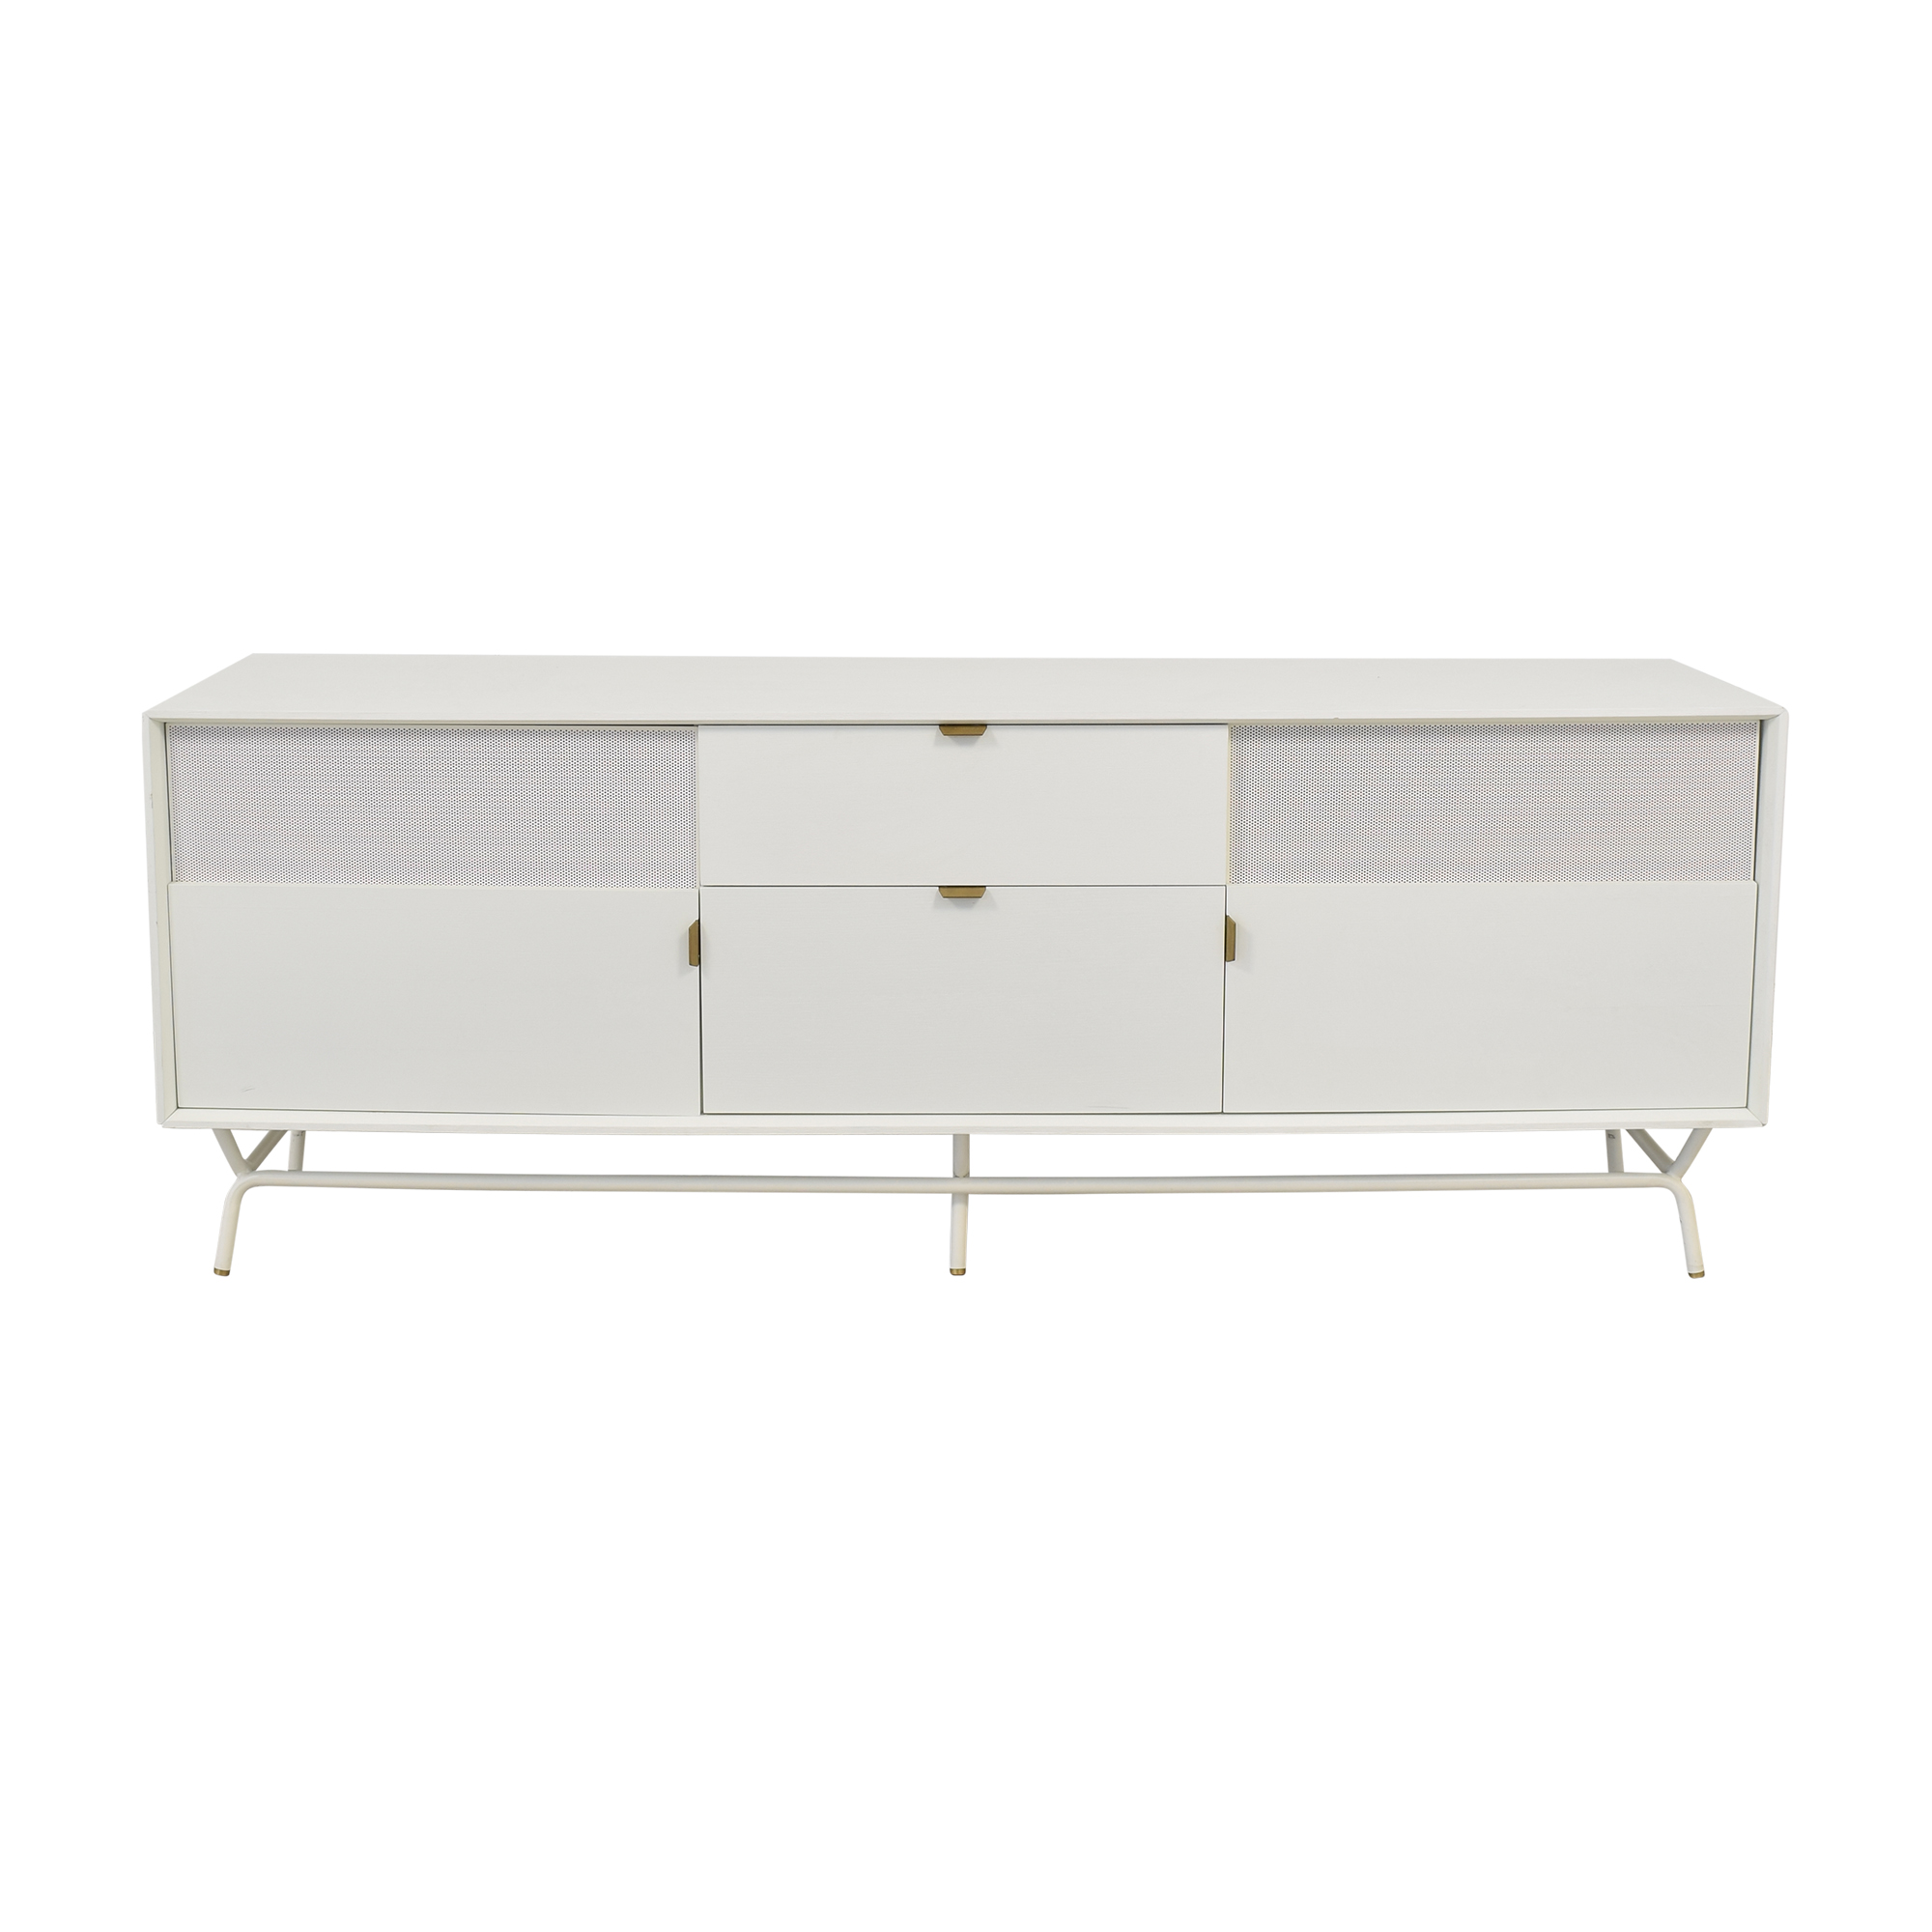 Blu Dot Blu Dot Dang 2 Door / 2 Drawer Console nj